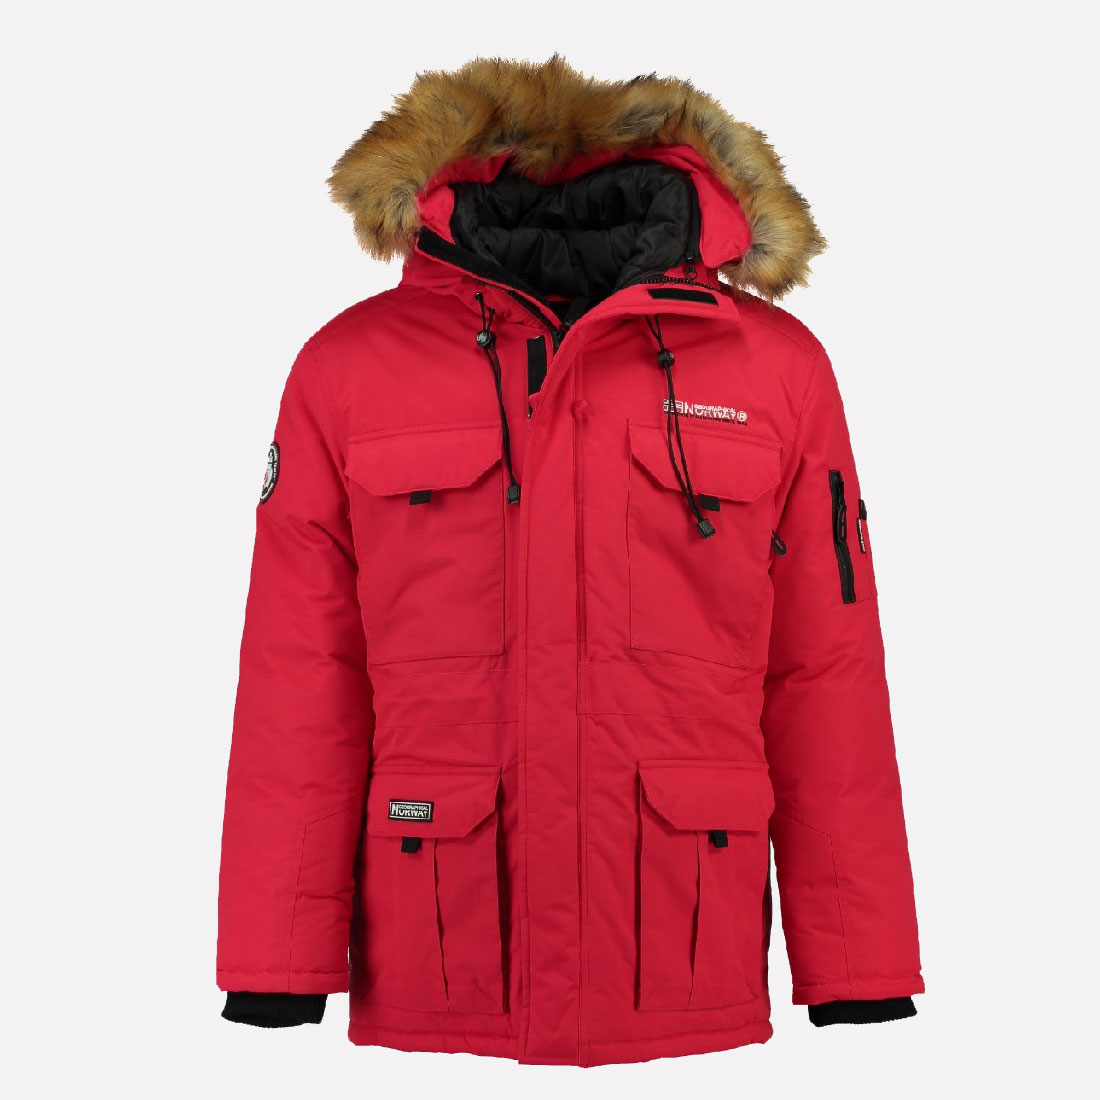 geographical norway men 39 s parka outdoor coat very warm winter jacket ski new ebay. Black Bedroom Furniture Sets. Home Design Ideas